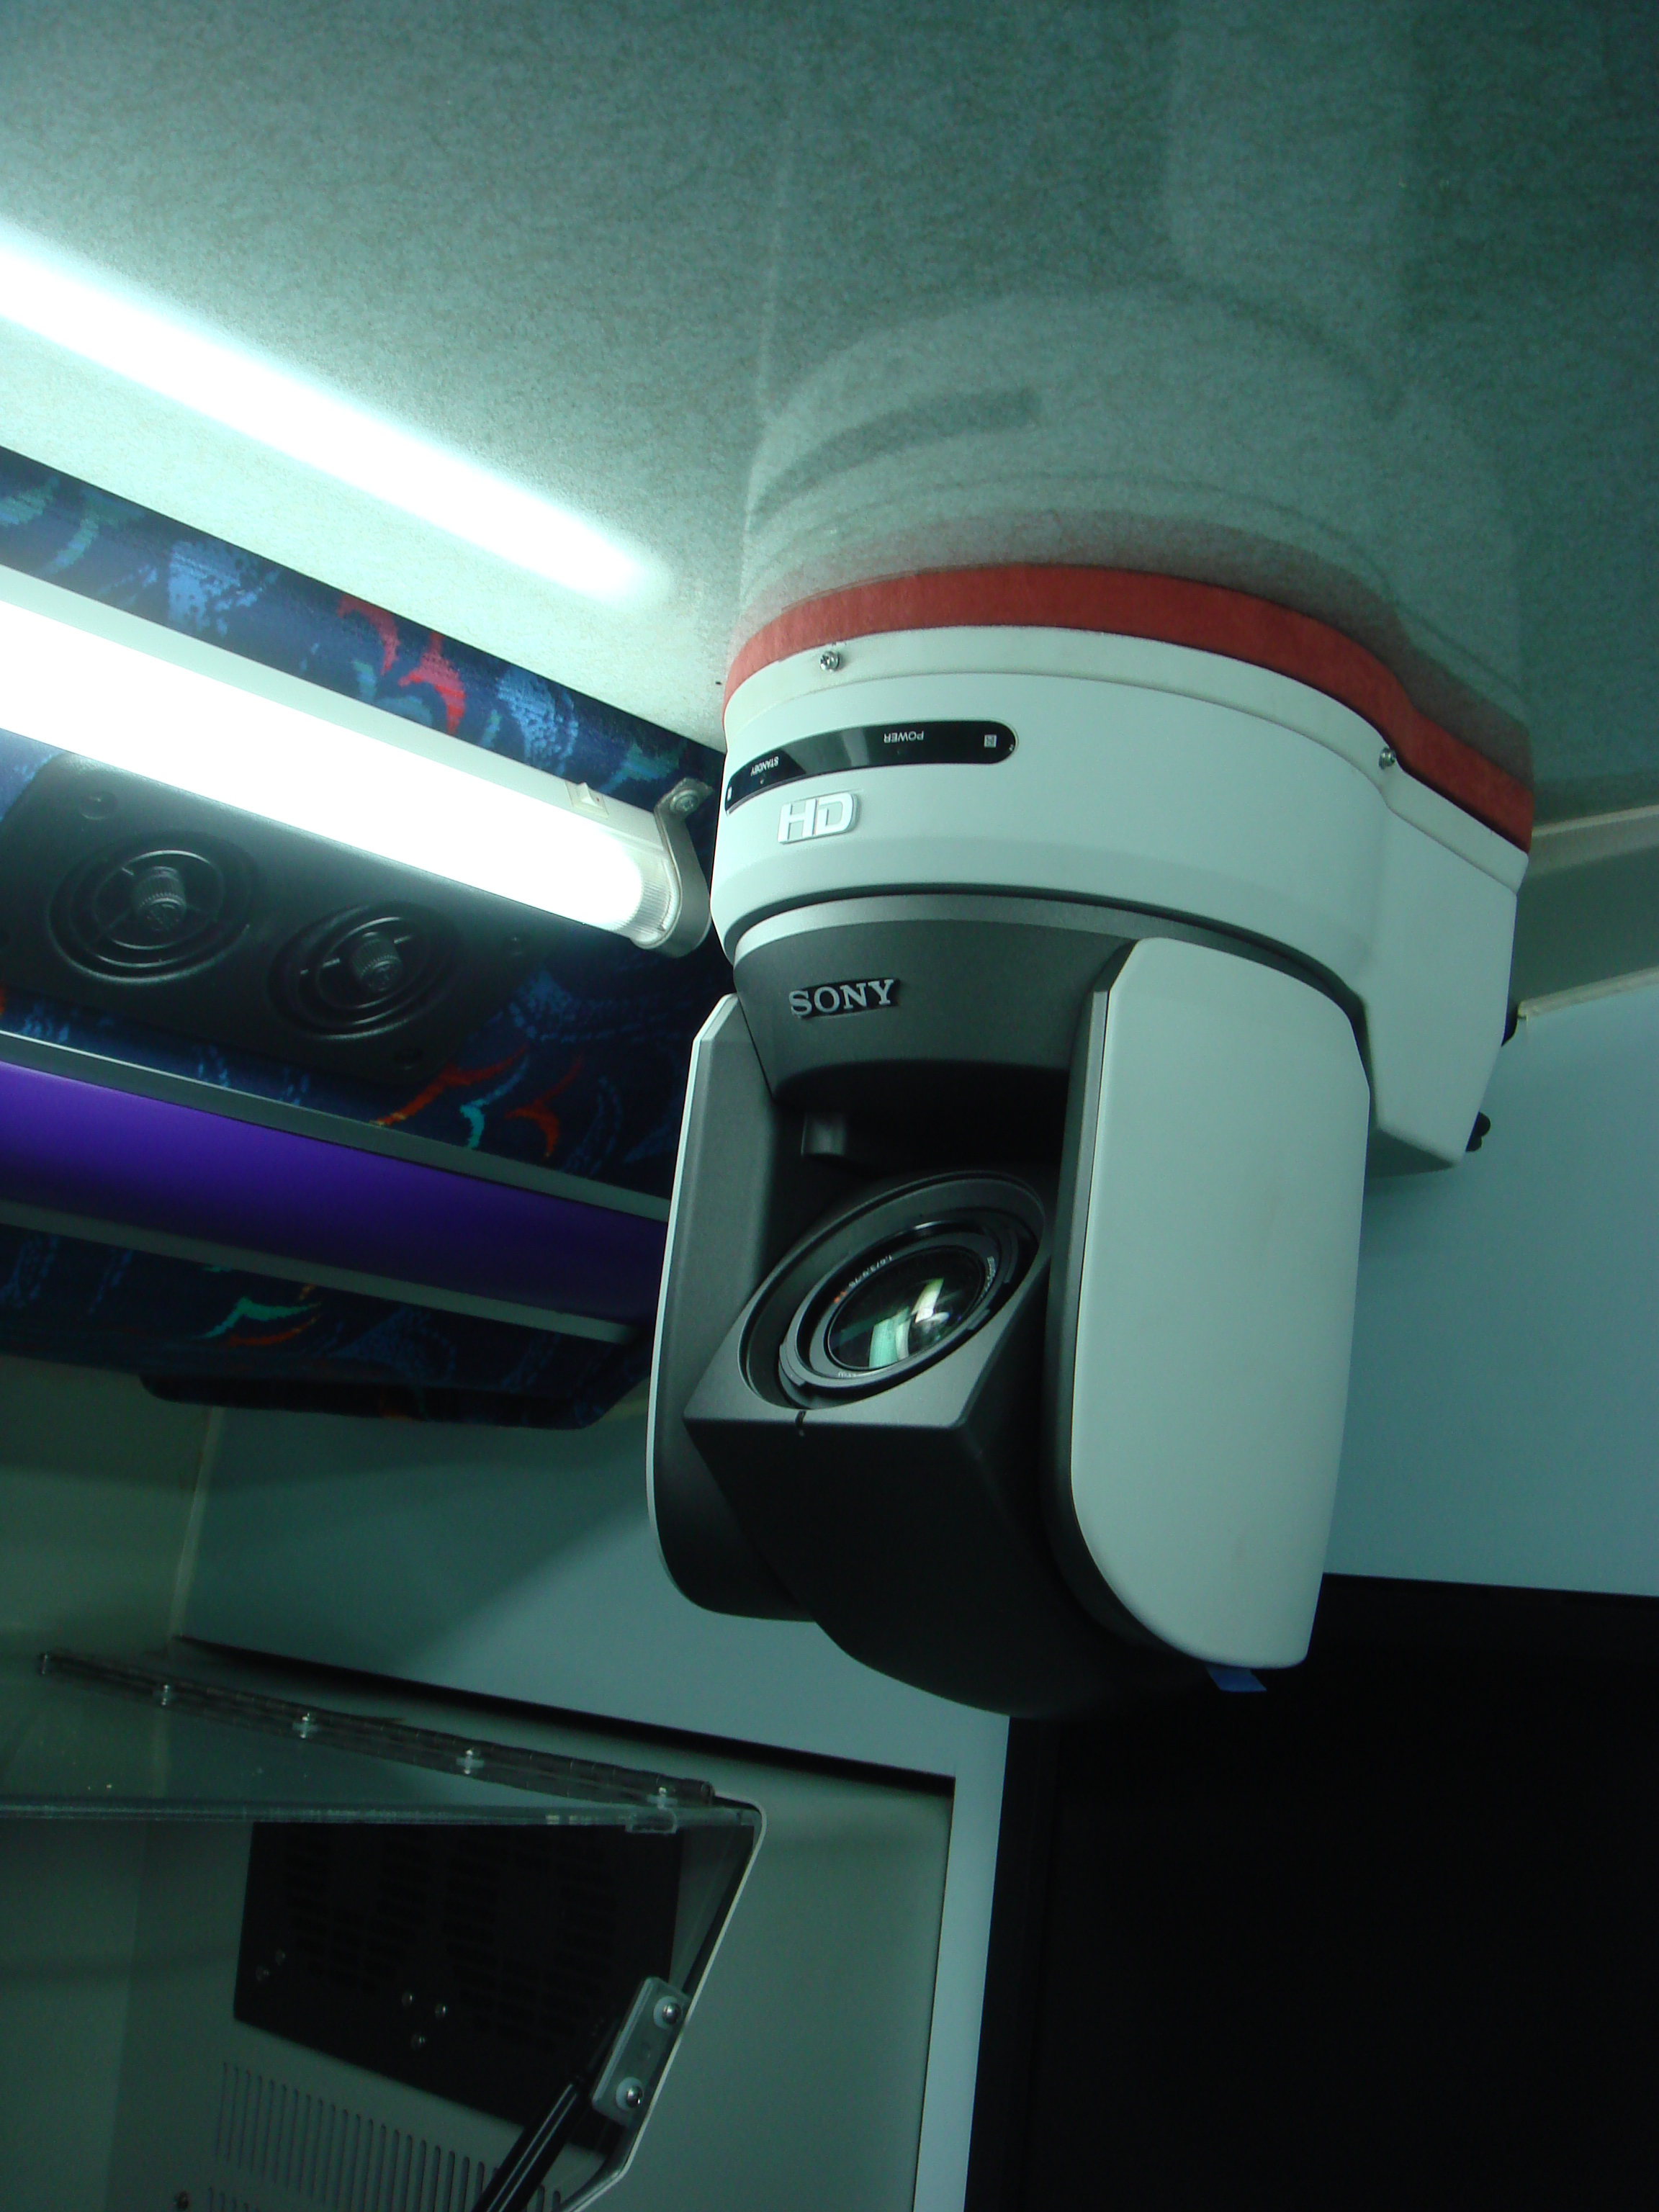 A high definition camera for capturing the demonstration from the teachers, which will be broadcasted to the LCD screens on top of the working stations, as well as a huge LCD TV on the side of the bus for entertaining the public audience.